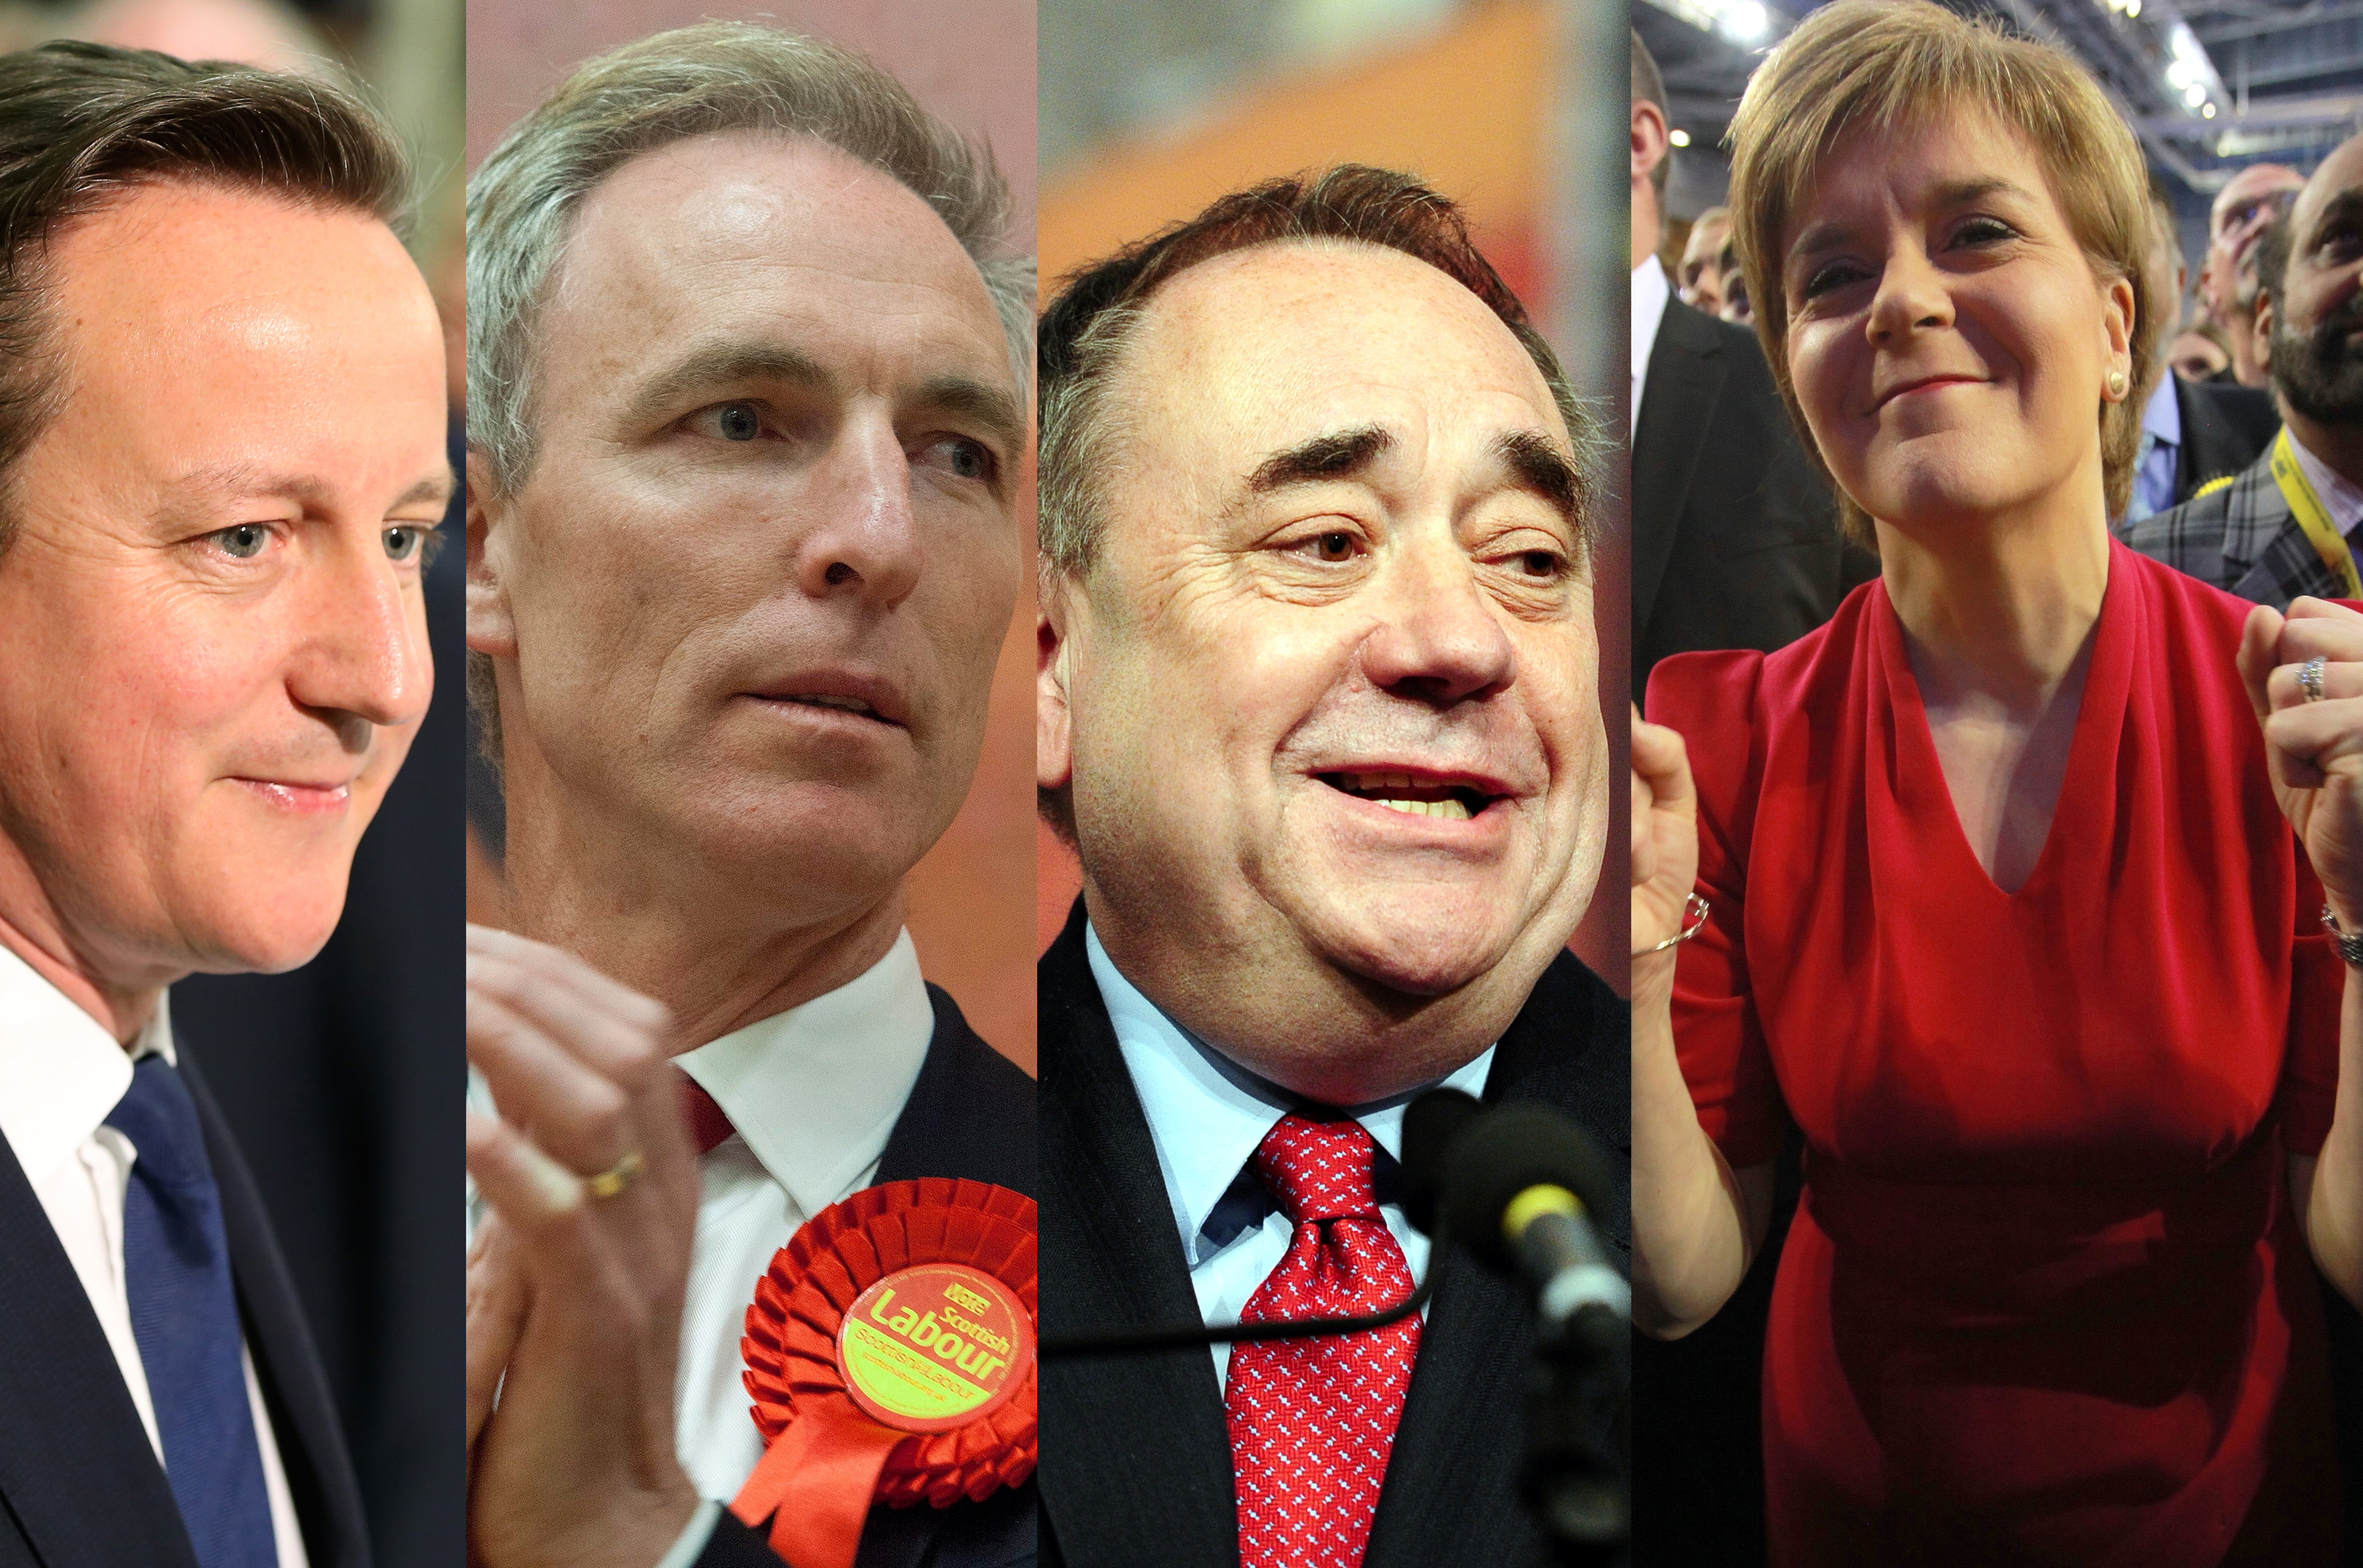 A night of highs and lows in the General Election